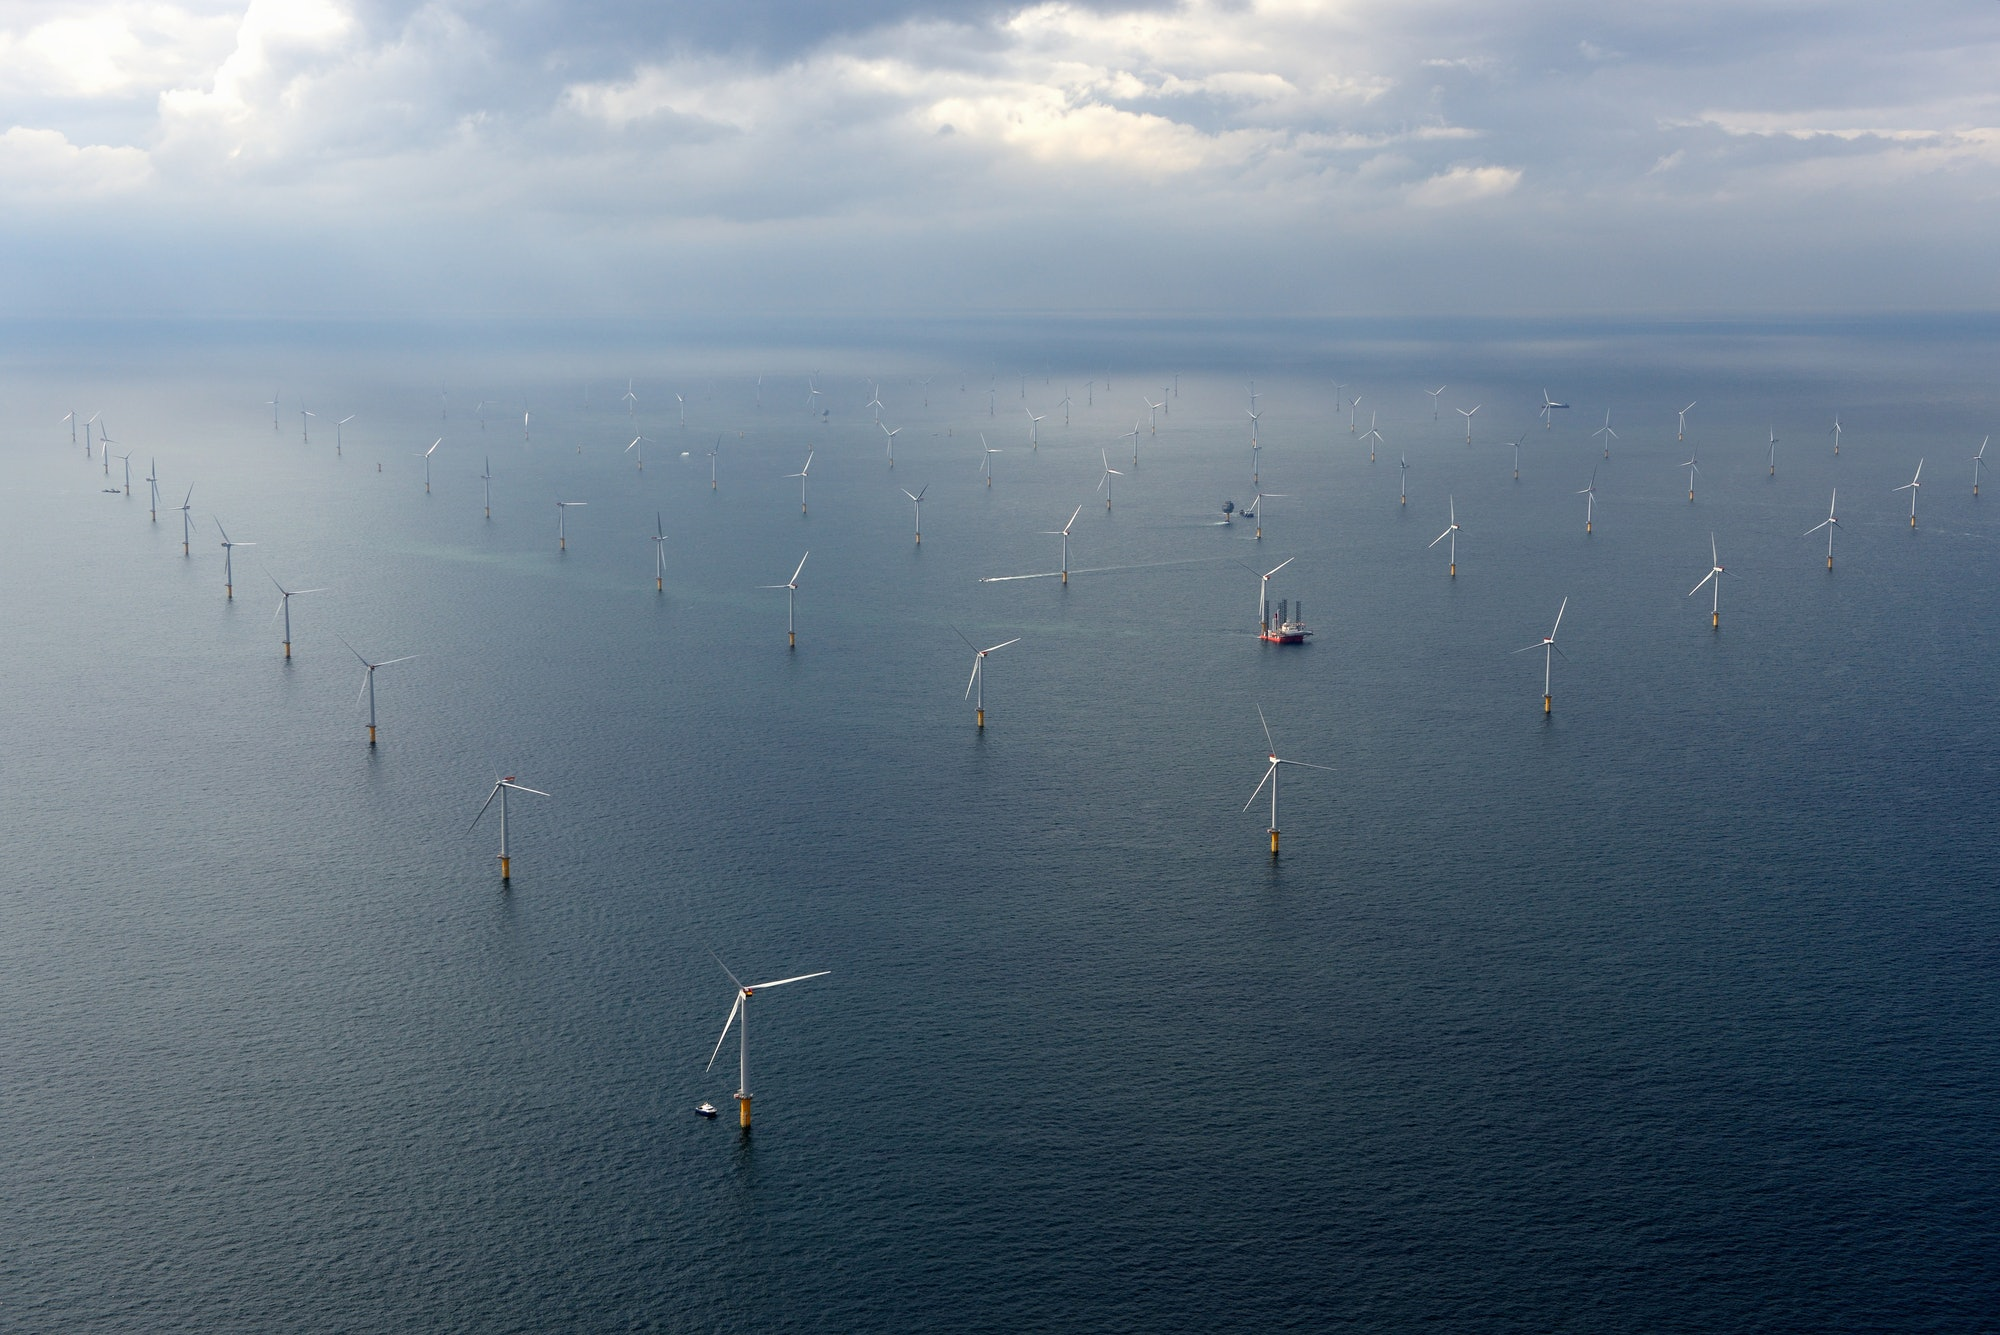 World's largest offshore wind farm.